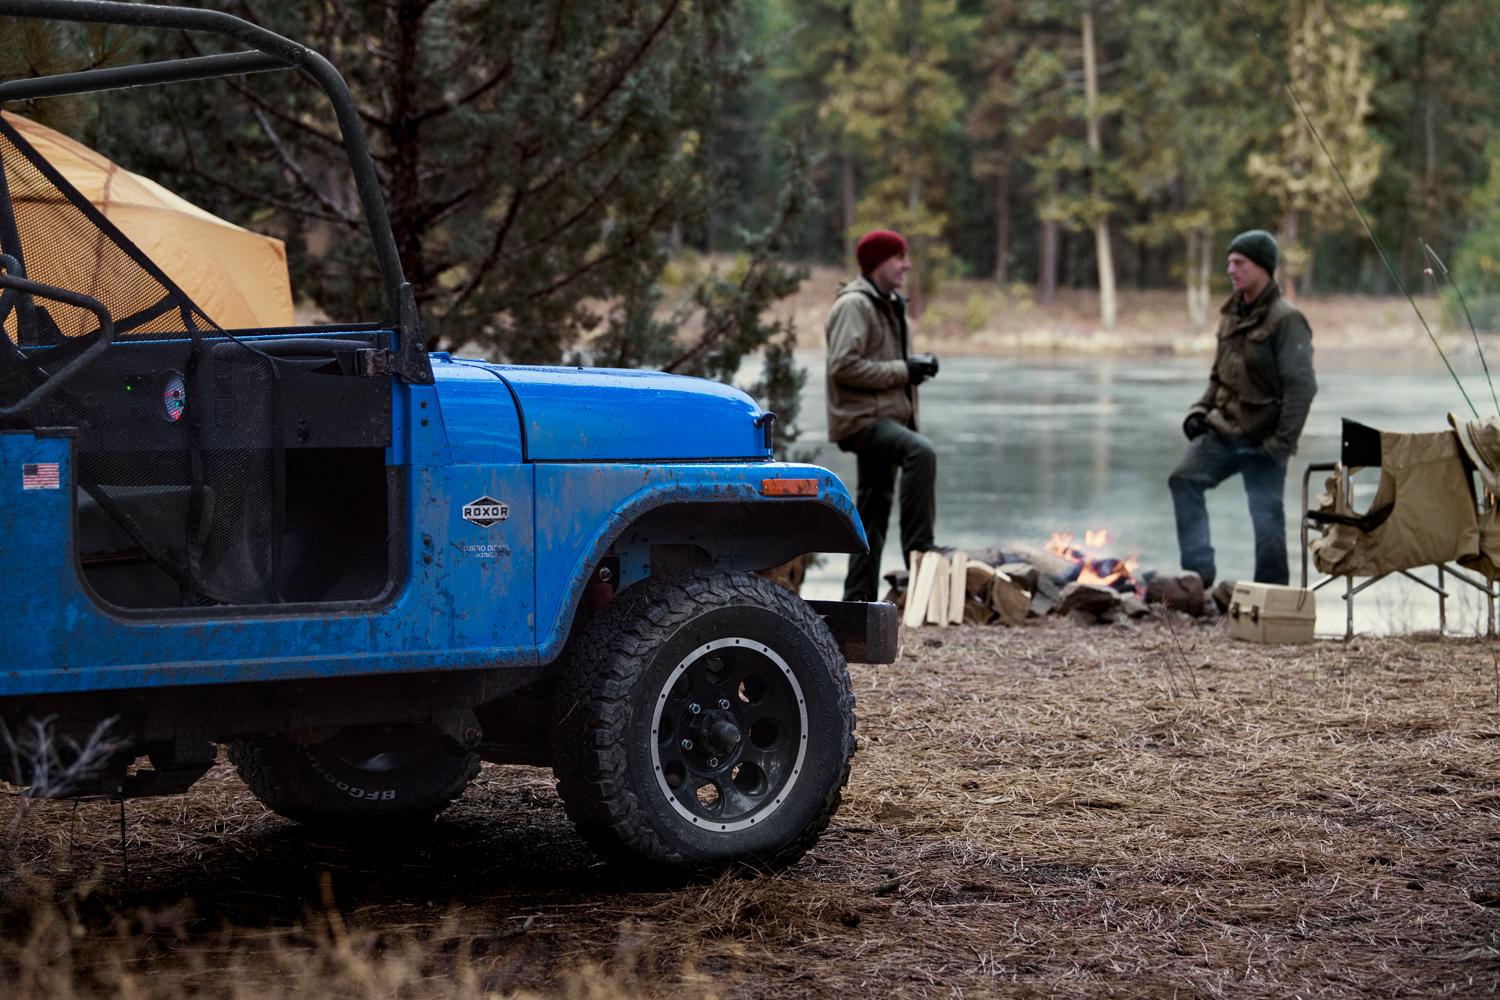 Camping with the Mahindra ROXOR